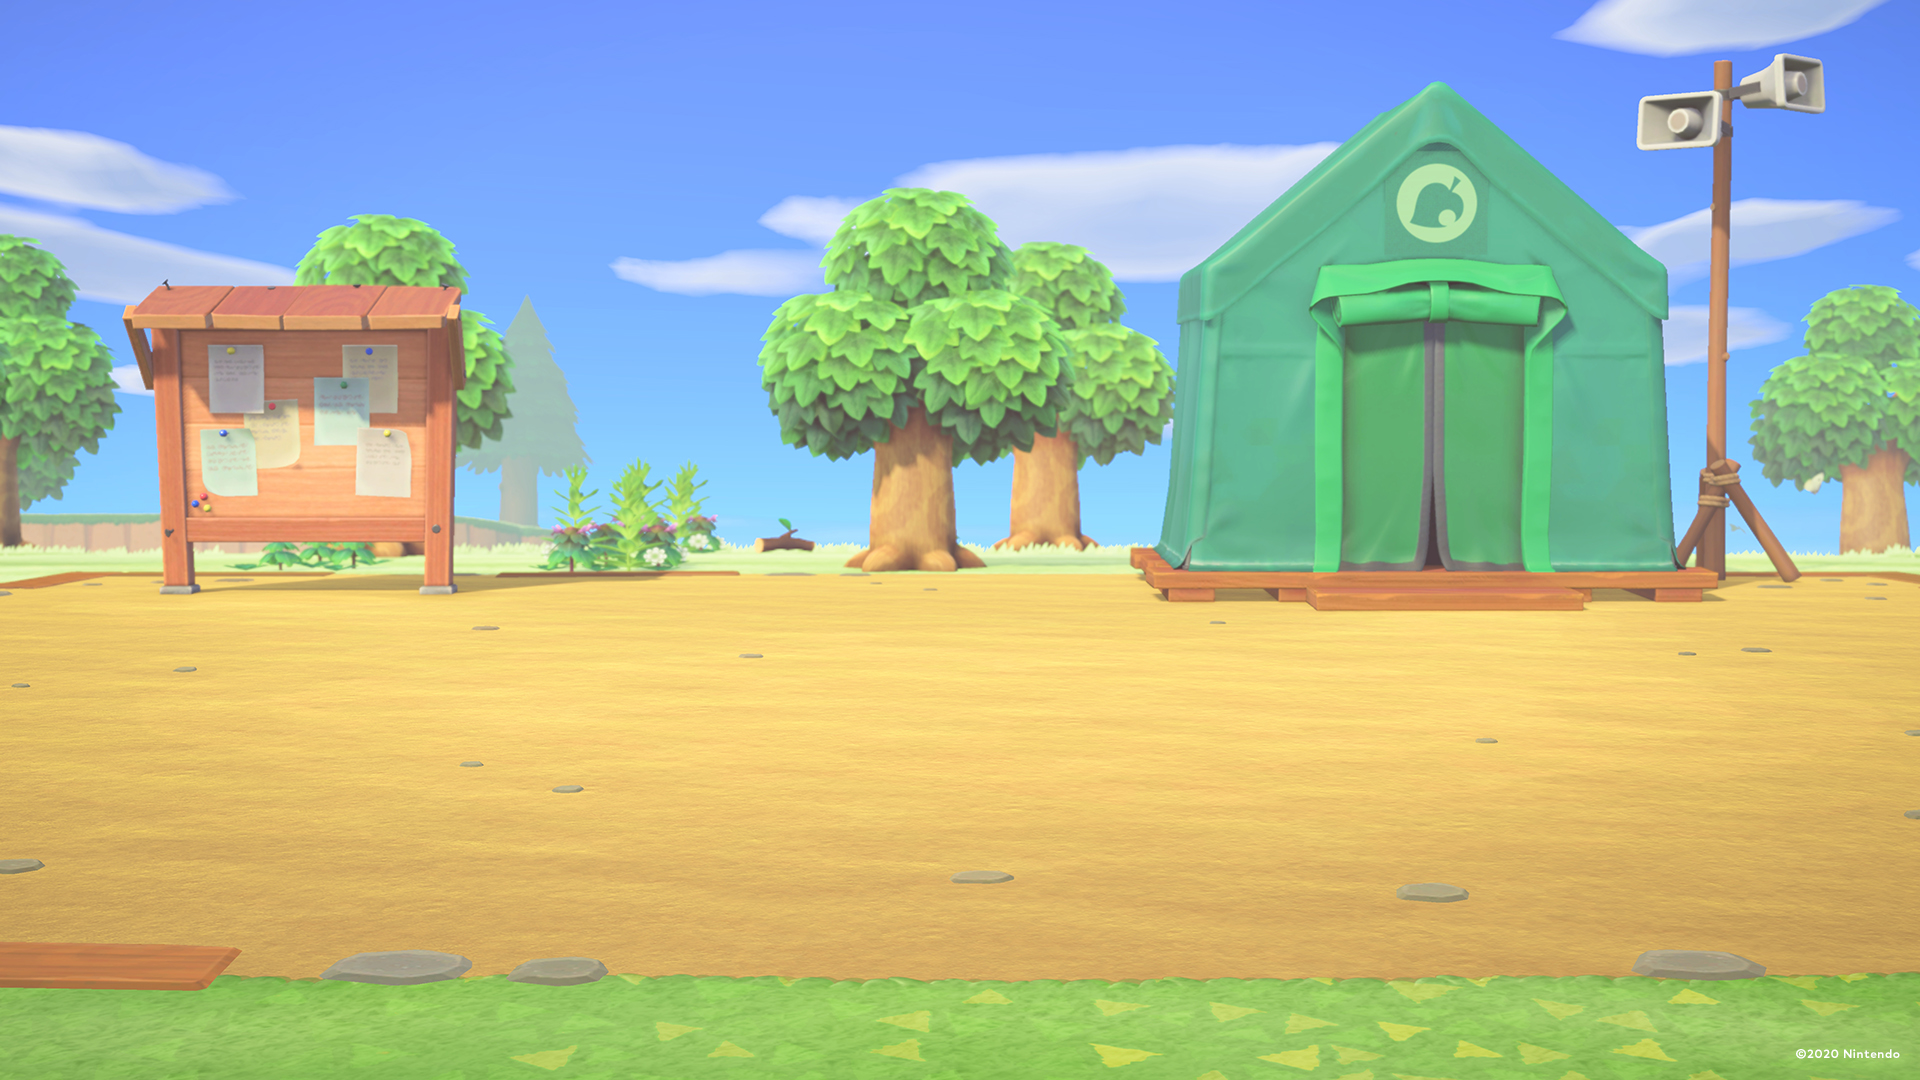 Nintendo just added a ton of wallpapers to their official site screenshot